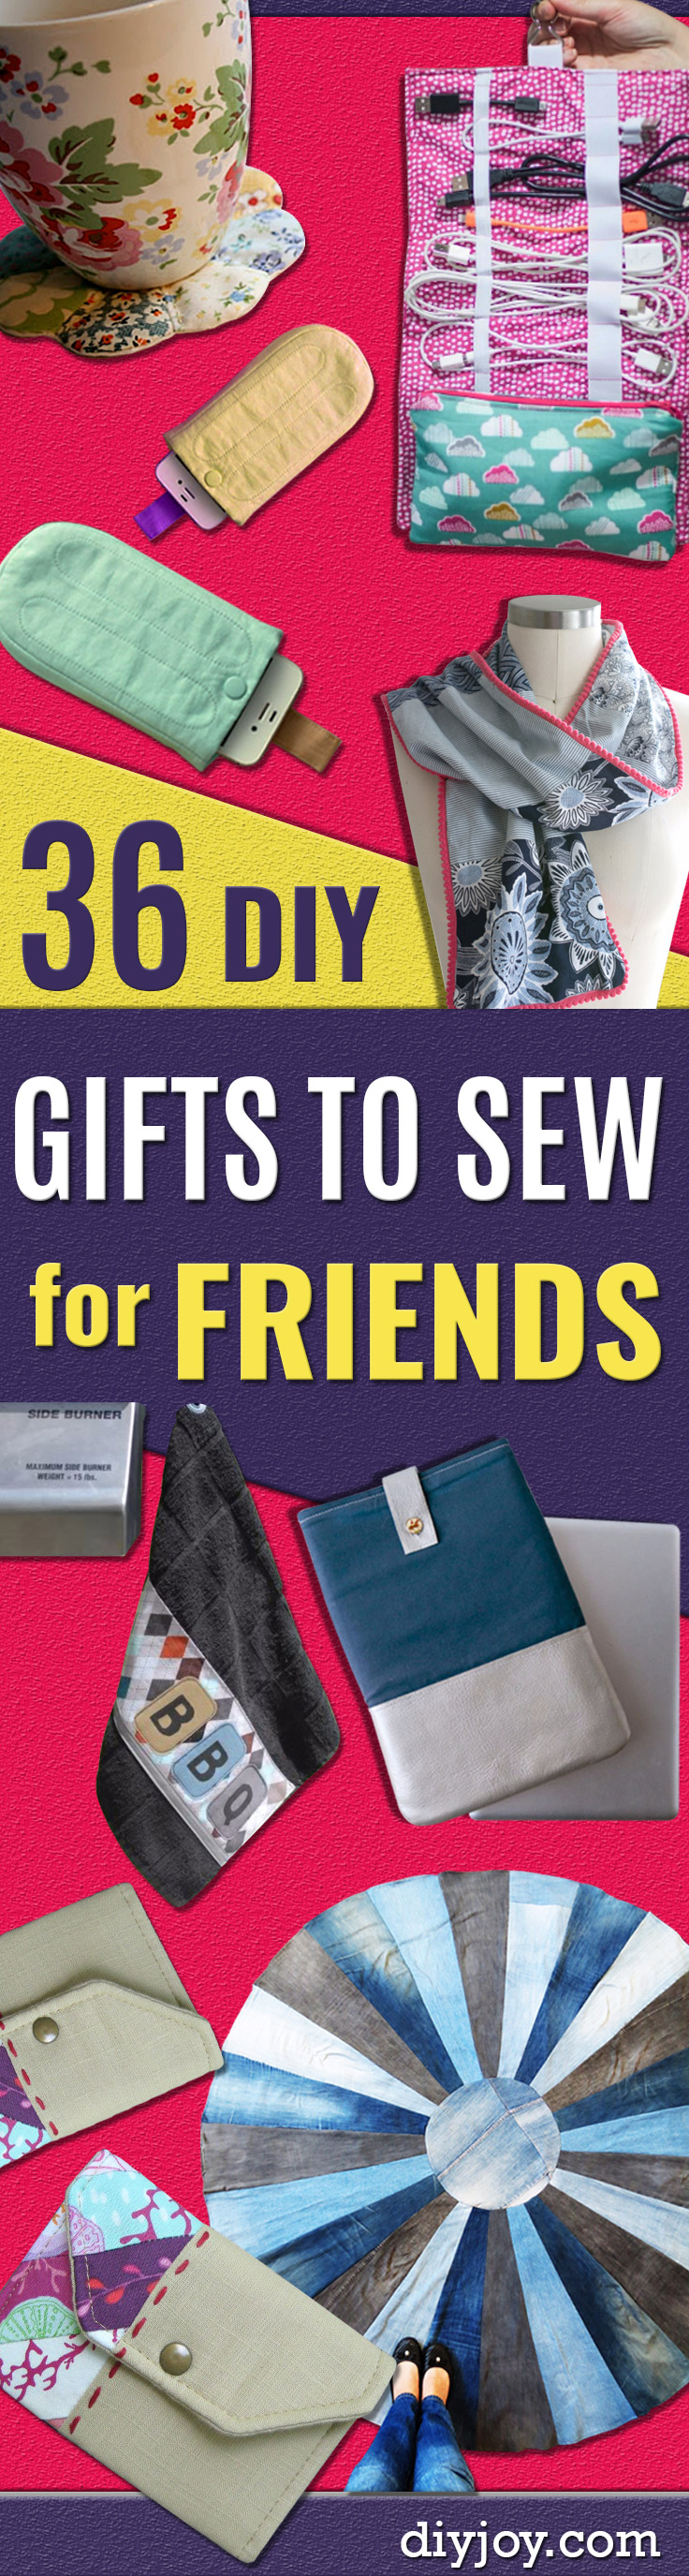 36 creative diy gifts to sew for friends for Easy crafts to make for friends